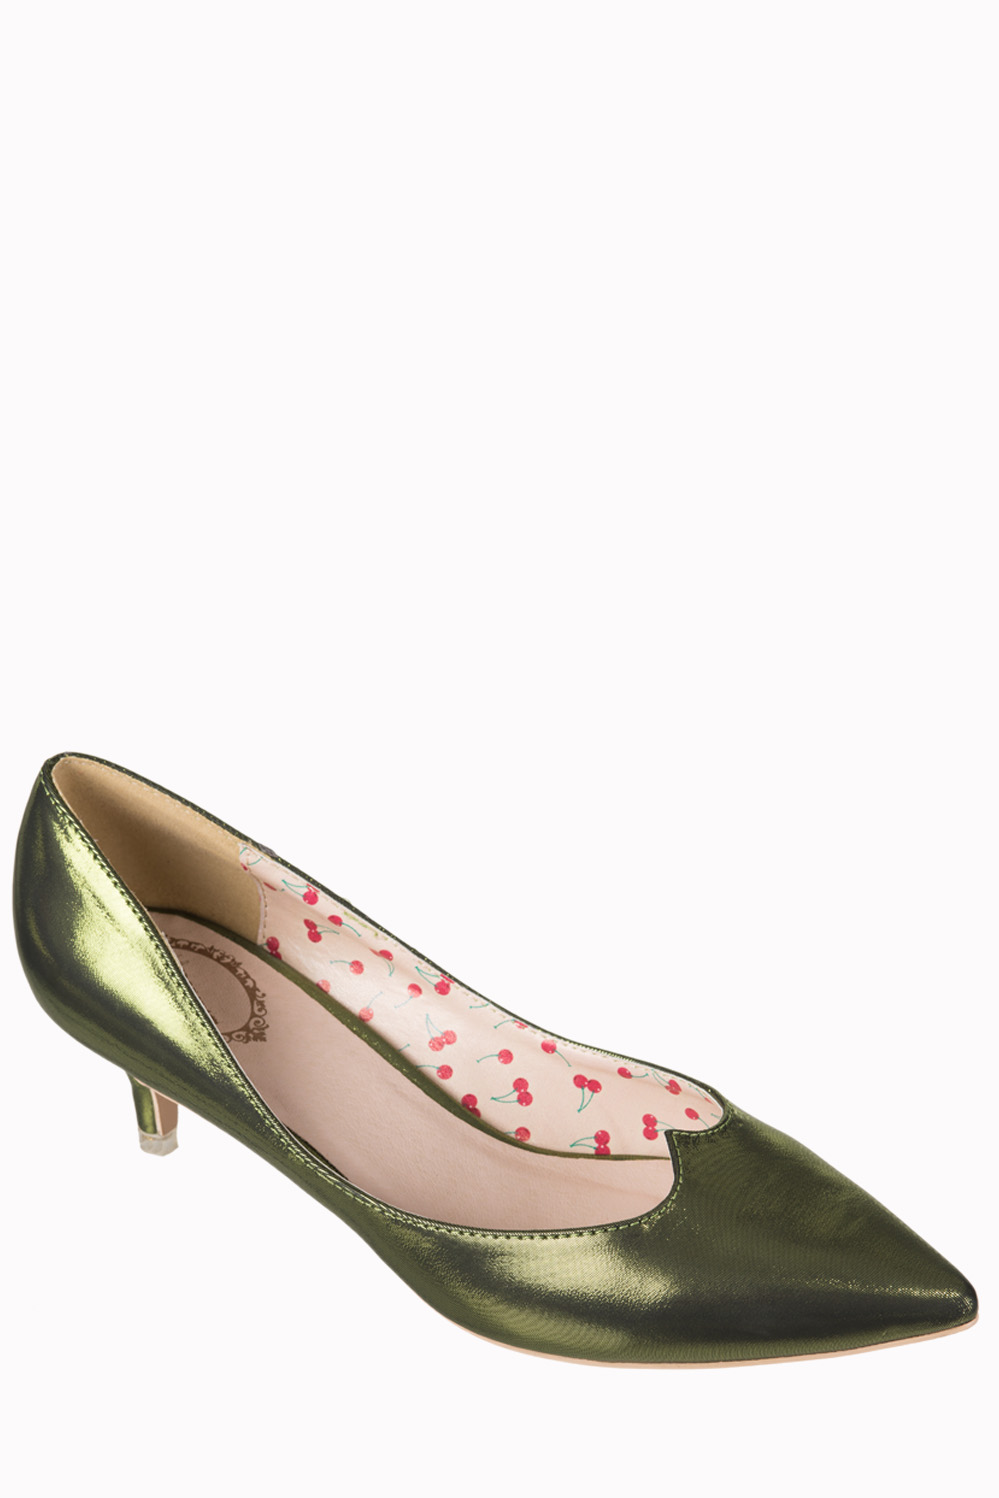 Dancing Days By Banned 1940s Olive Green Kitten Heels